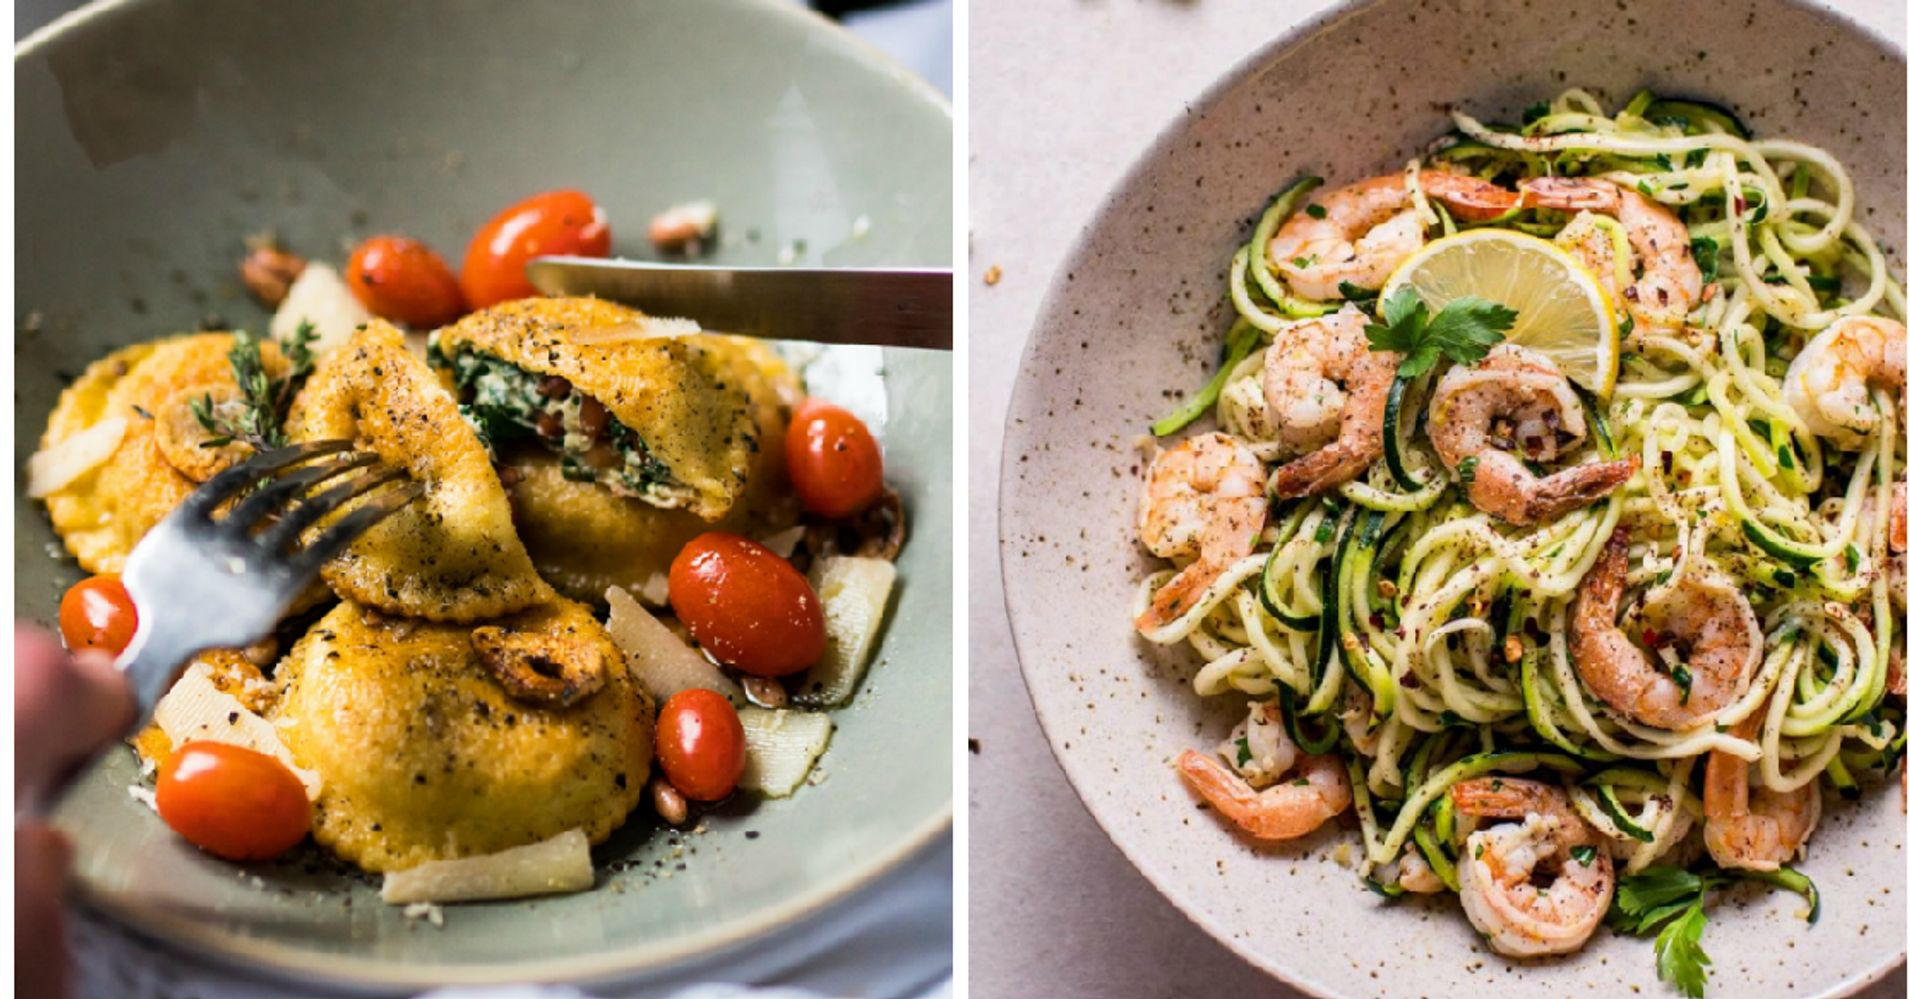 11 Keto Pasta Recipes For When You Really Just Want Spaghetti